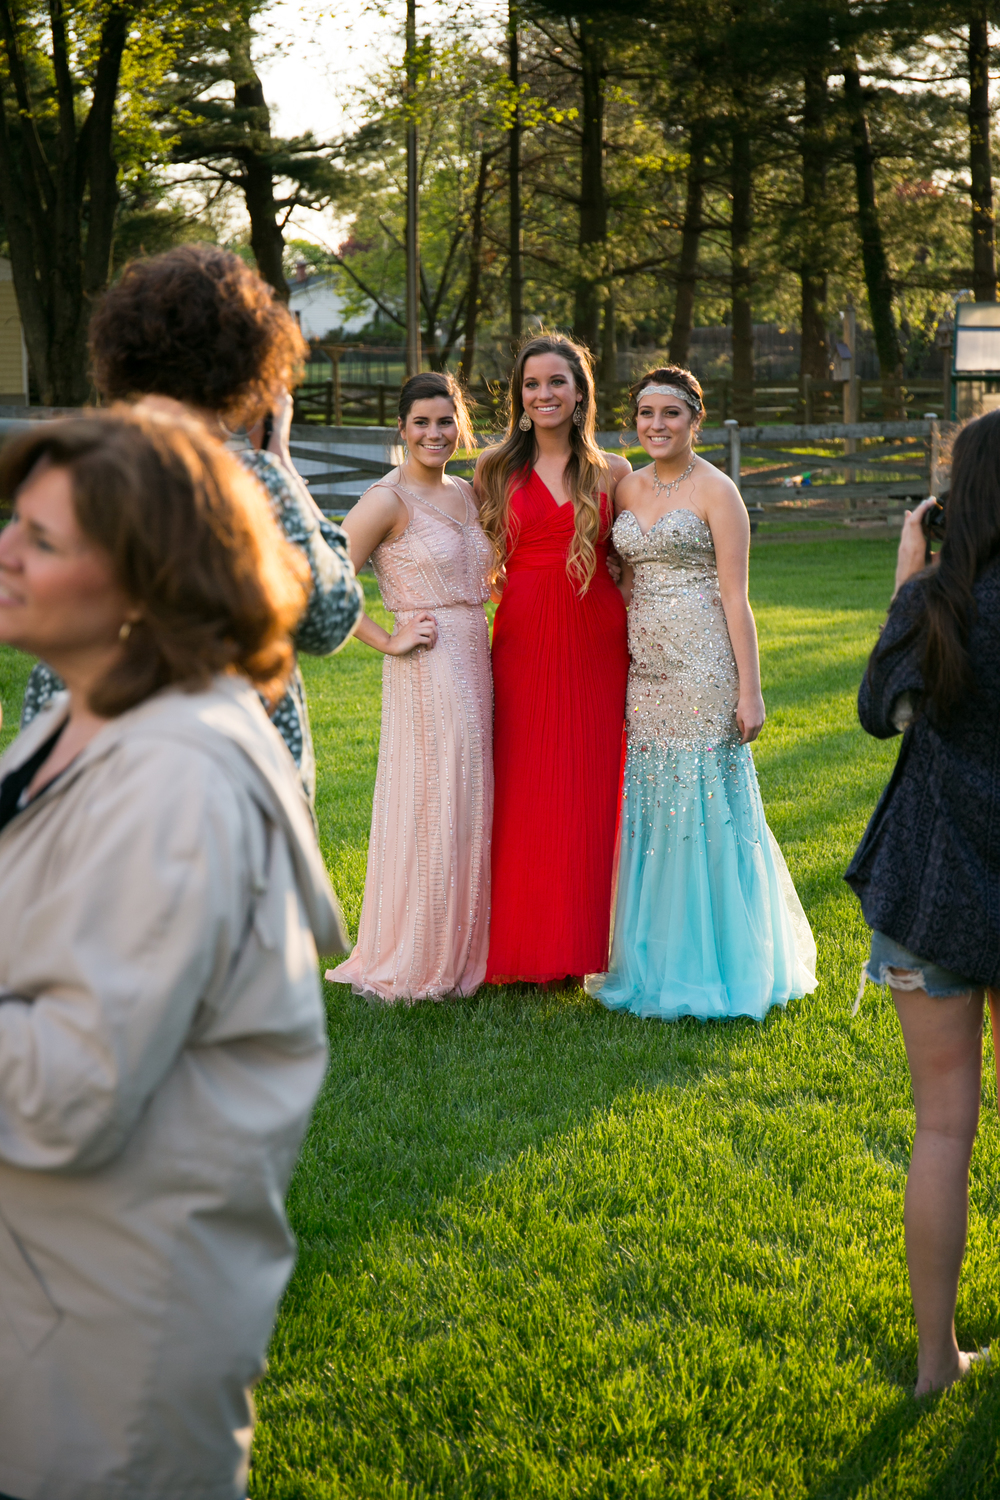 Mount-De-Sales-Pre-Prom-May-2014-95.jpg